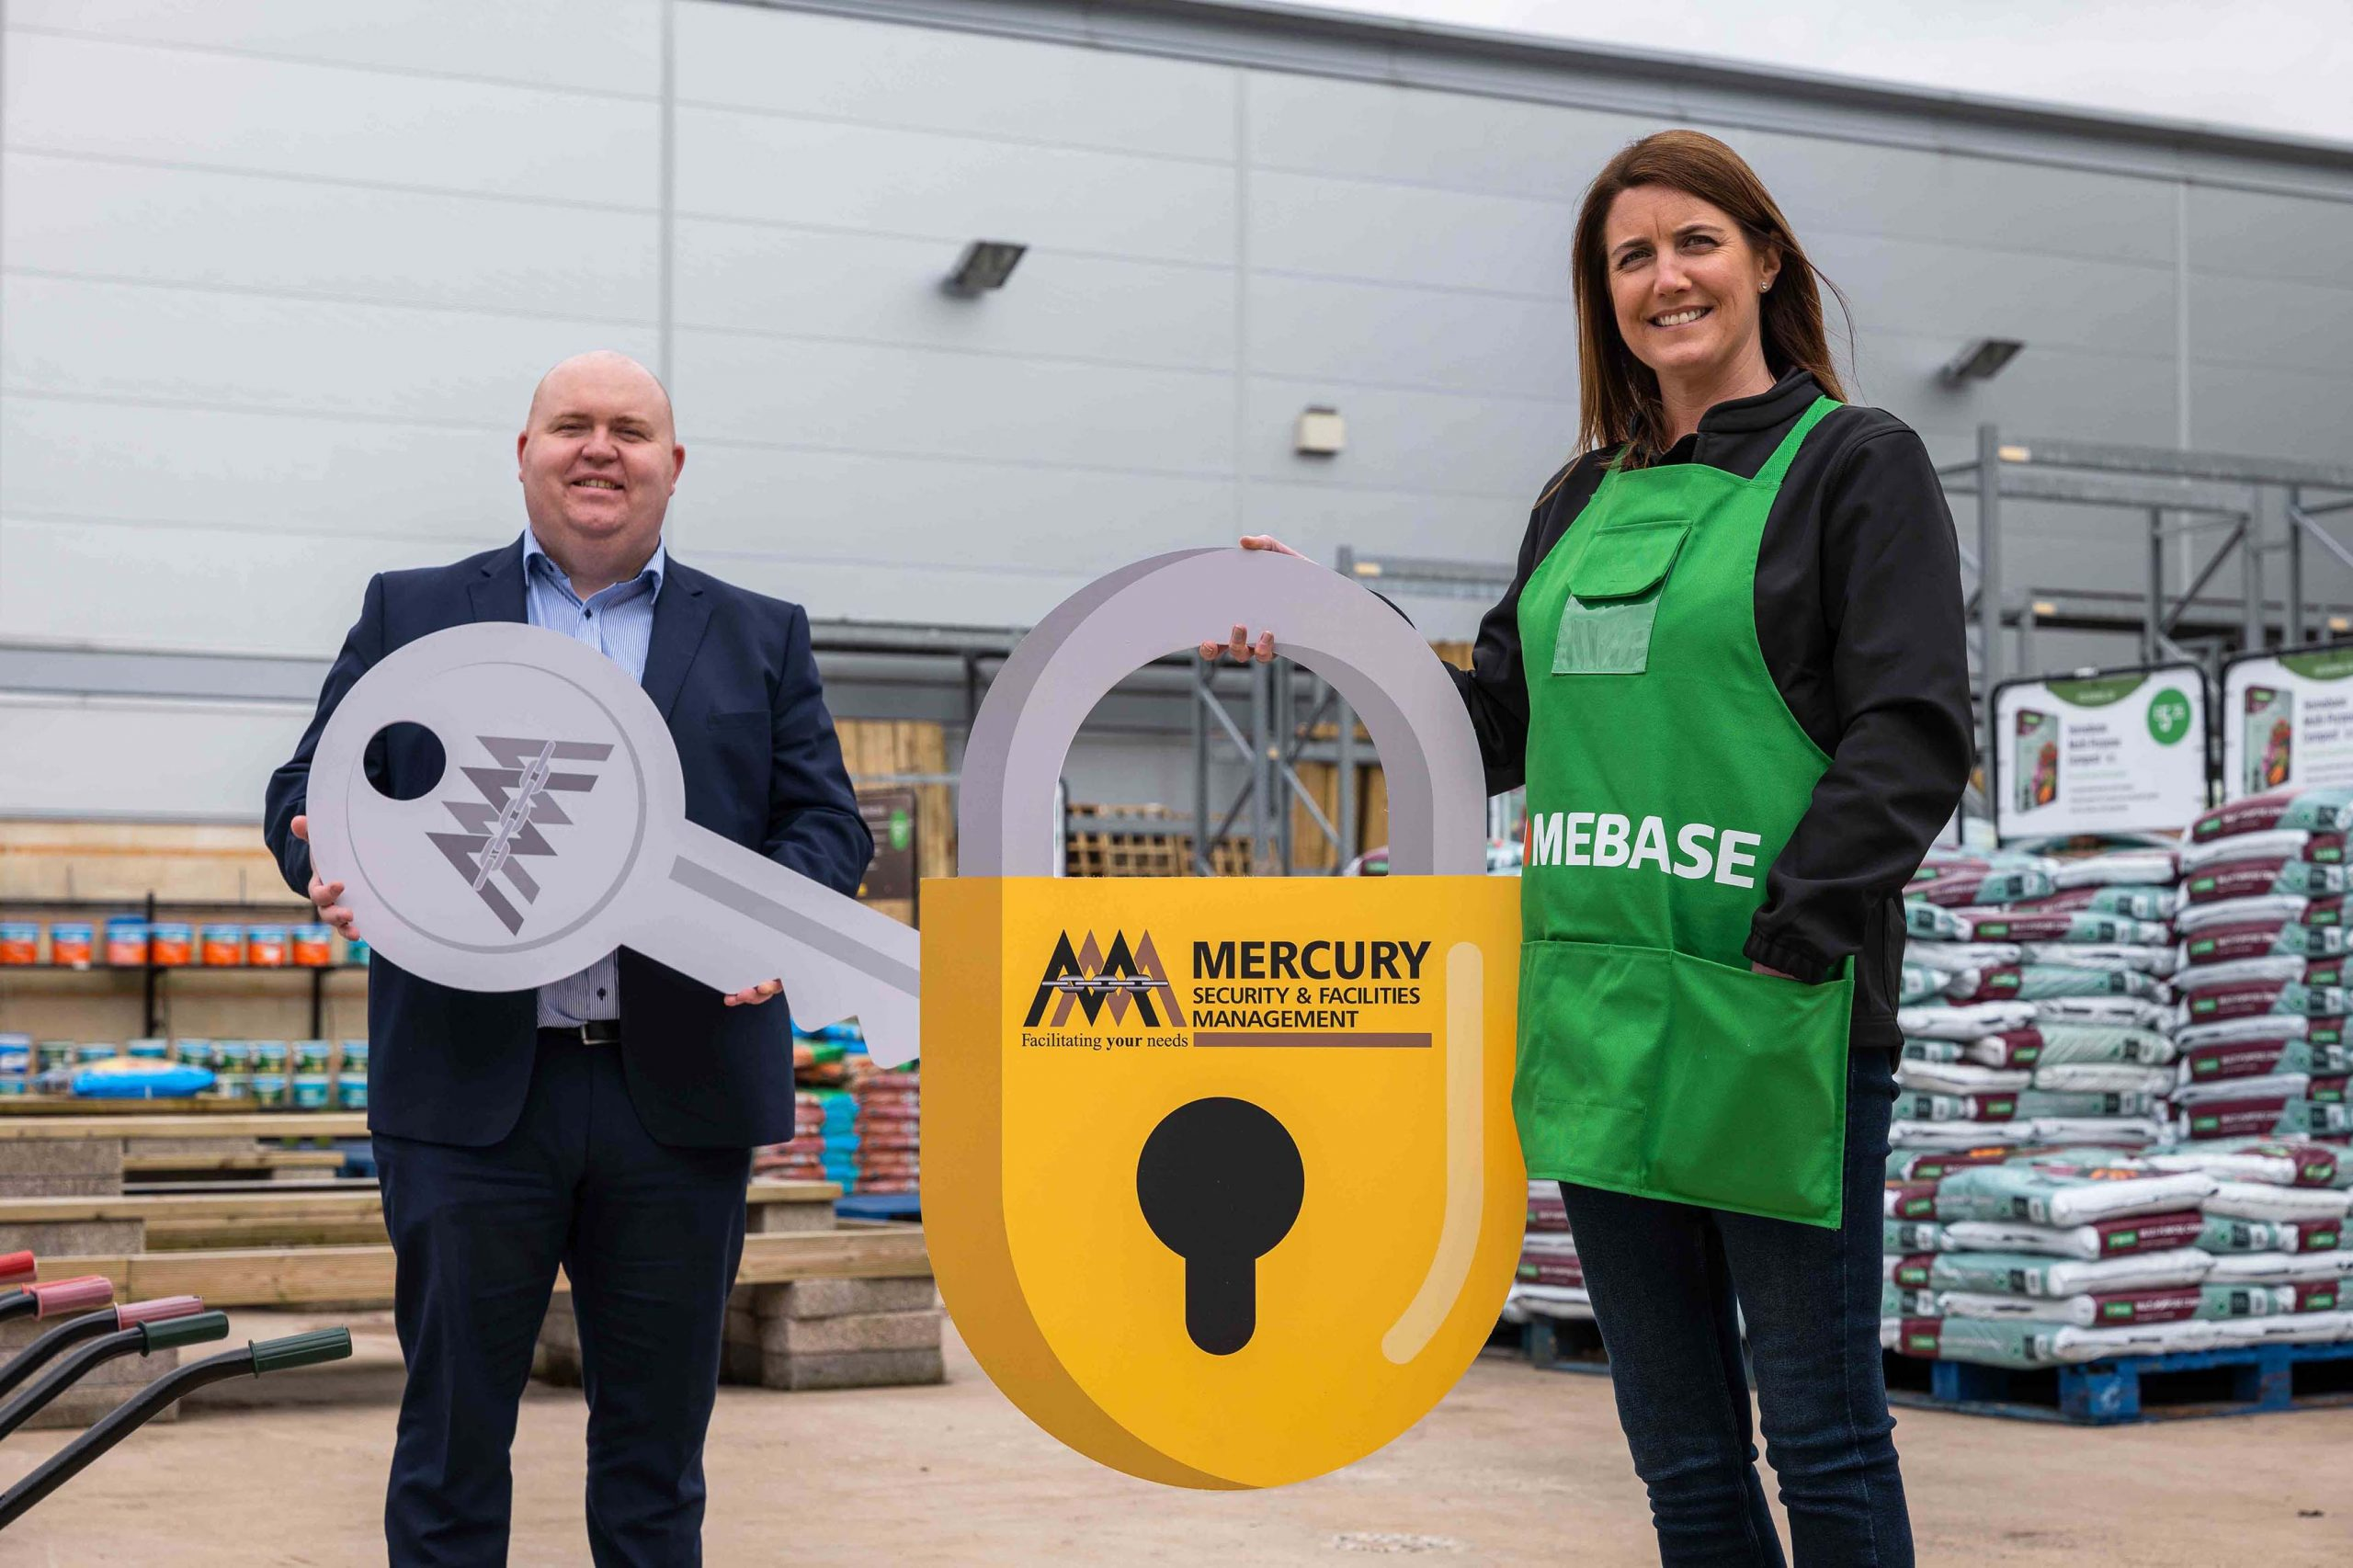 BUSINESS BLOOMING: Ireland's biggest independent security provider and facilities management company Mercury Security & Facilities Management (MSFM) has been awarded the all-Ireland security contract for home and garden experts Homebase. Headquartered in Lisburn with offices in Dublin, Limerick and London, MSFM is a leading security provider in the retail market and Homebase joins an impressive portfolio of clients that also includes Smyth's Toys, Lidl, Harvey Norman, Lifestyle Sports, and a host of prominent shopping centres. Liam Cullen, MSFM Regional Director UK and Ireland, and Karen Turner, Divisional Business Leader, Homebase Ireland, are pictured announcing the deal which will see Mercury provide a team of well-equipped and highly trained security and customer service officers, with fast access to additional support and resources if required, to the retailer's stores on the island of Ireland.